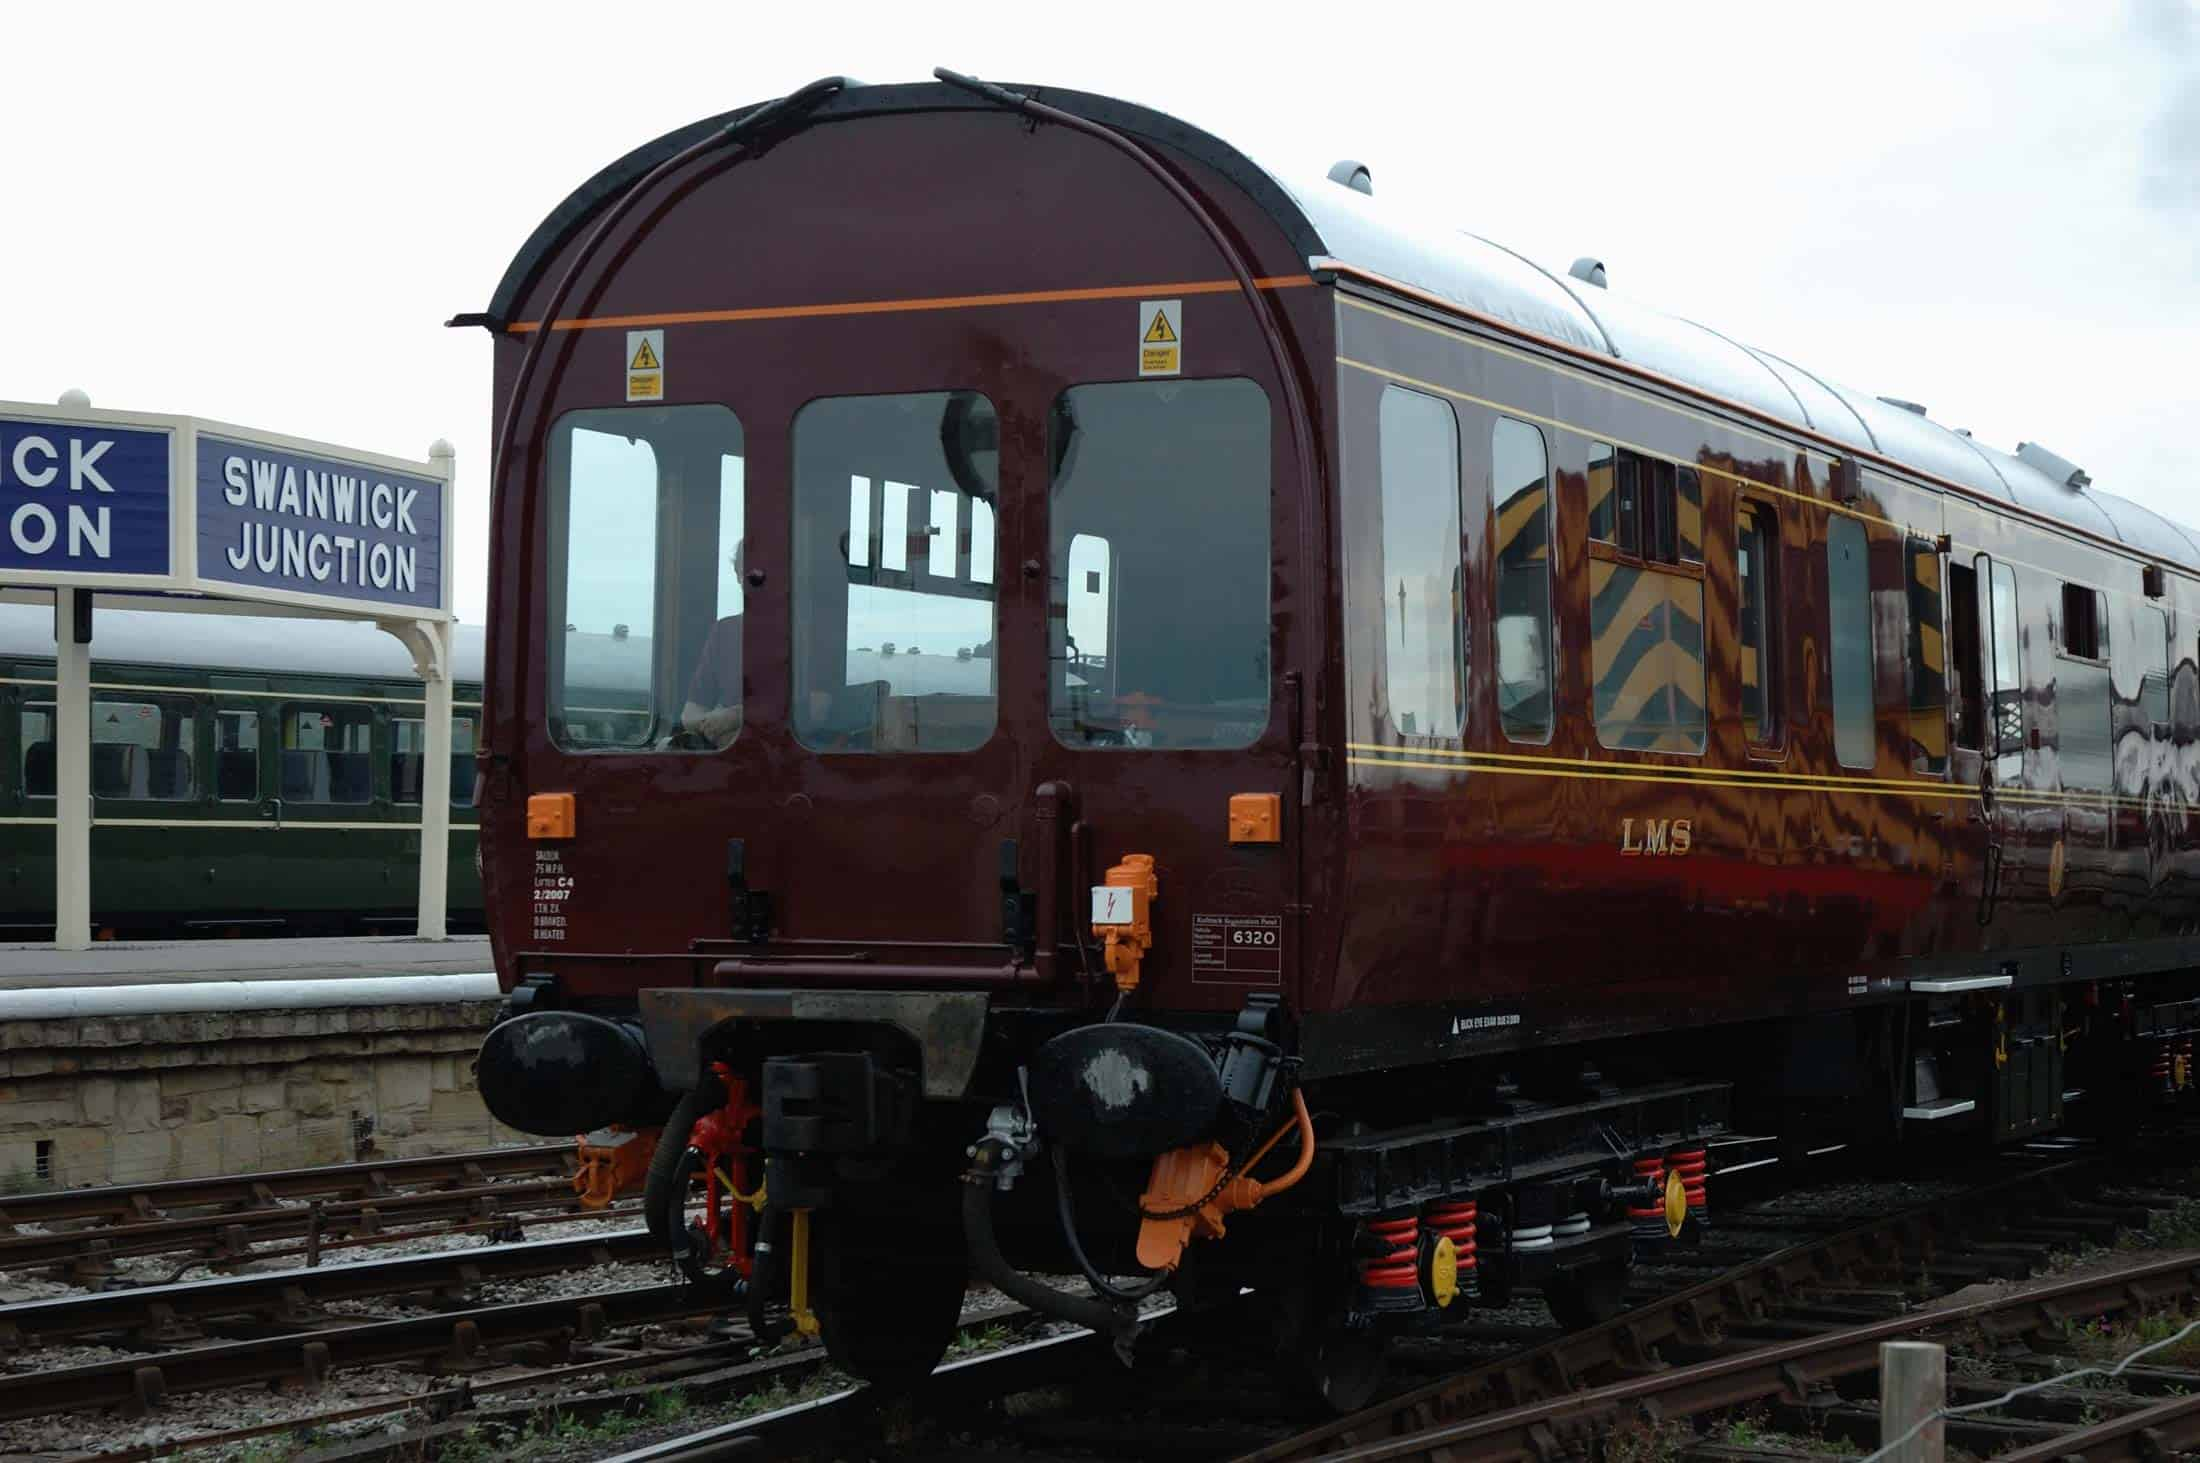 LMS Carriage